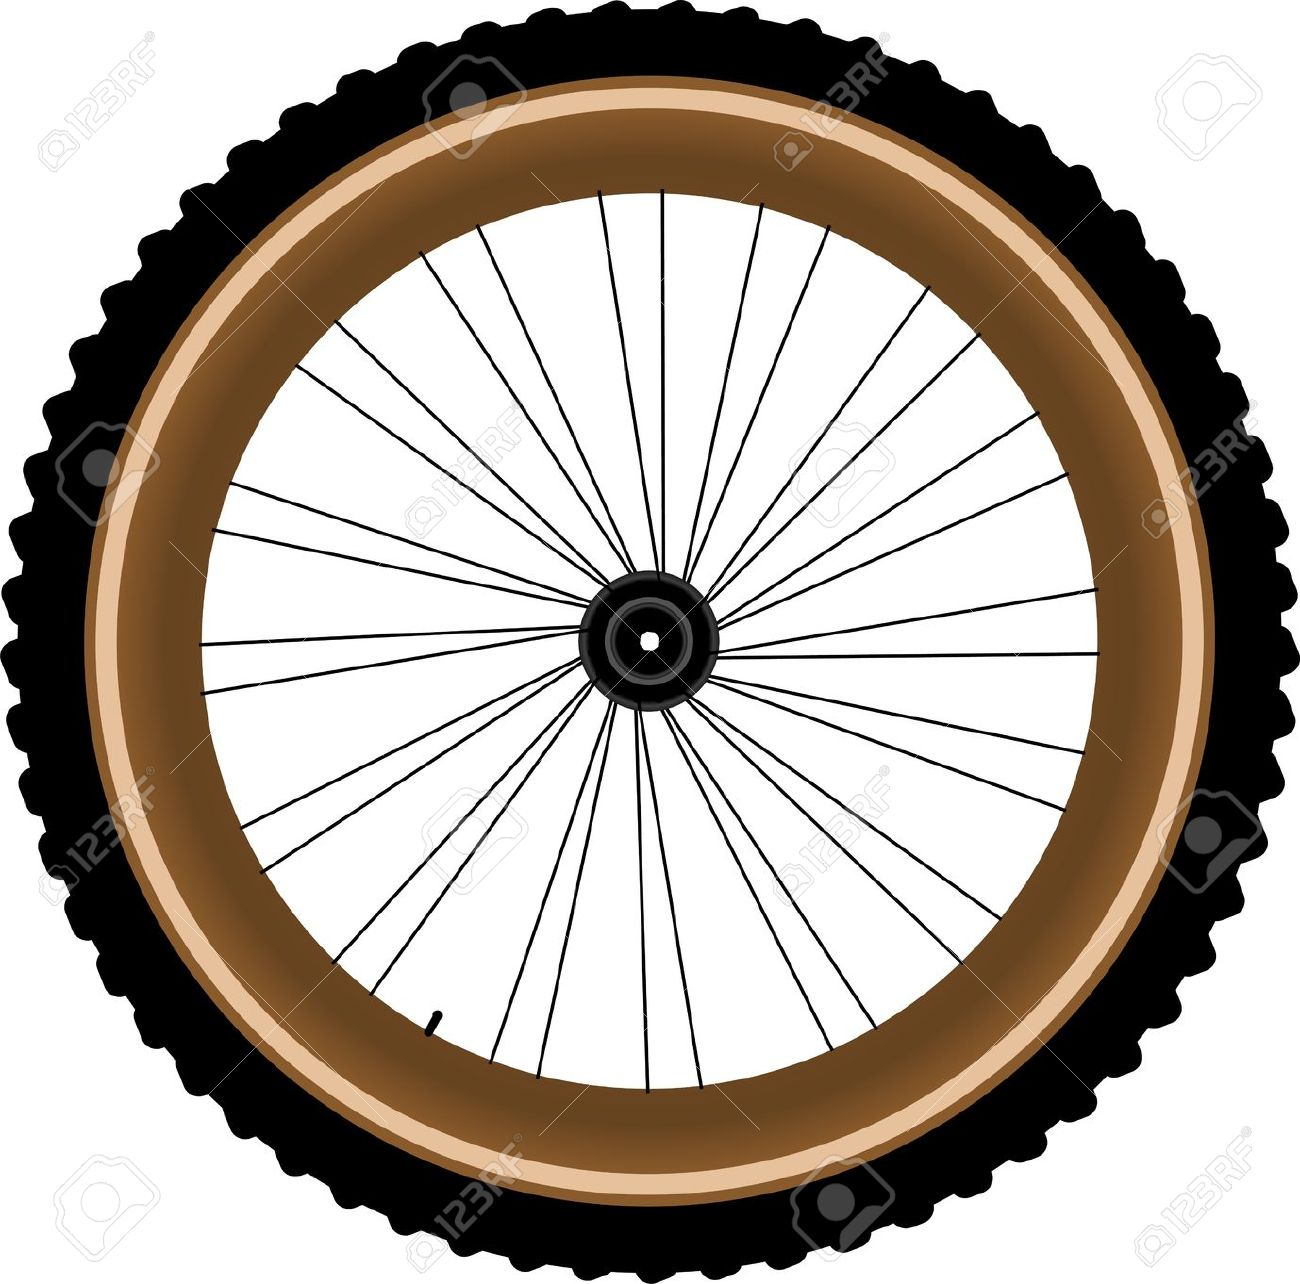 Mountain bike tyres clipart - Clipground